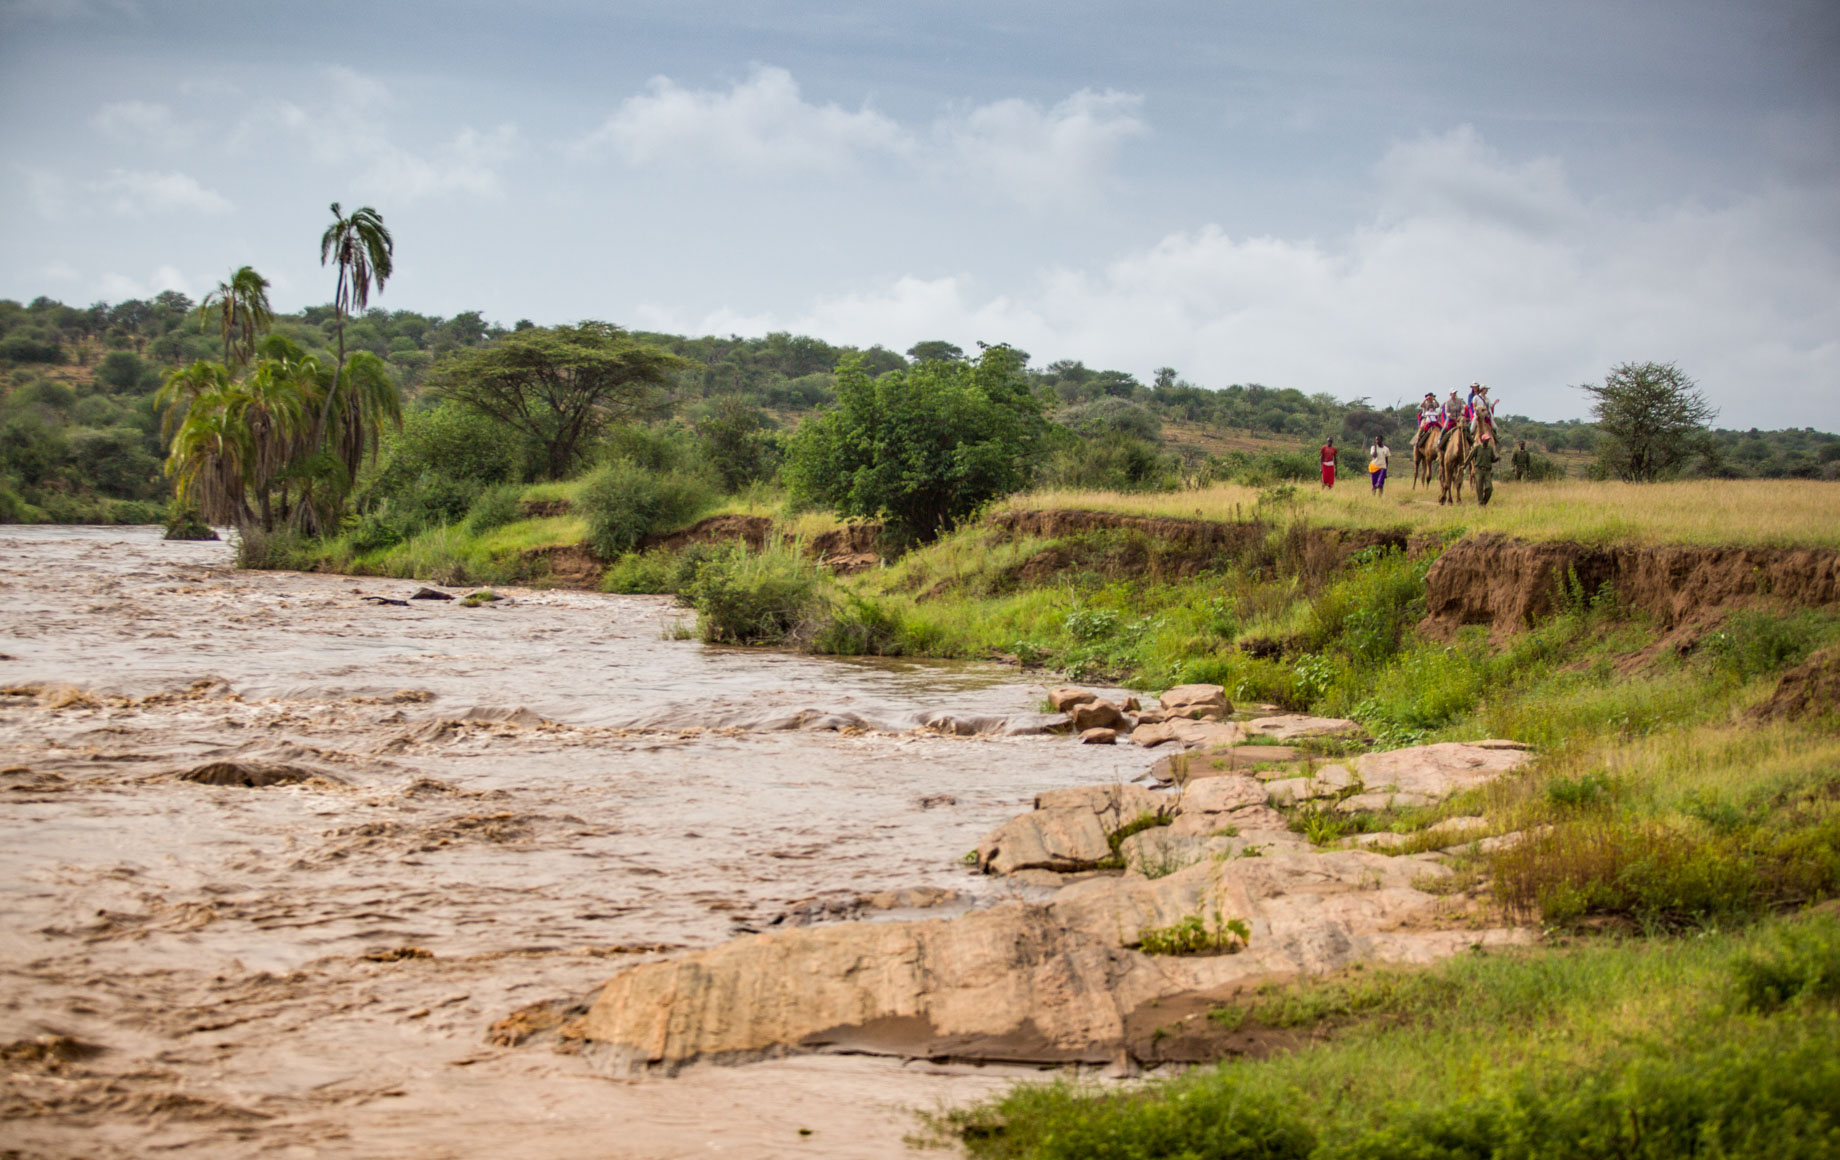 River and plains of Loisaba Conservancy